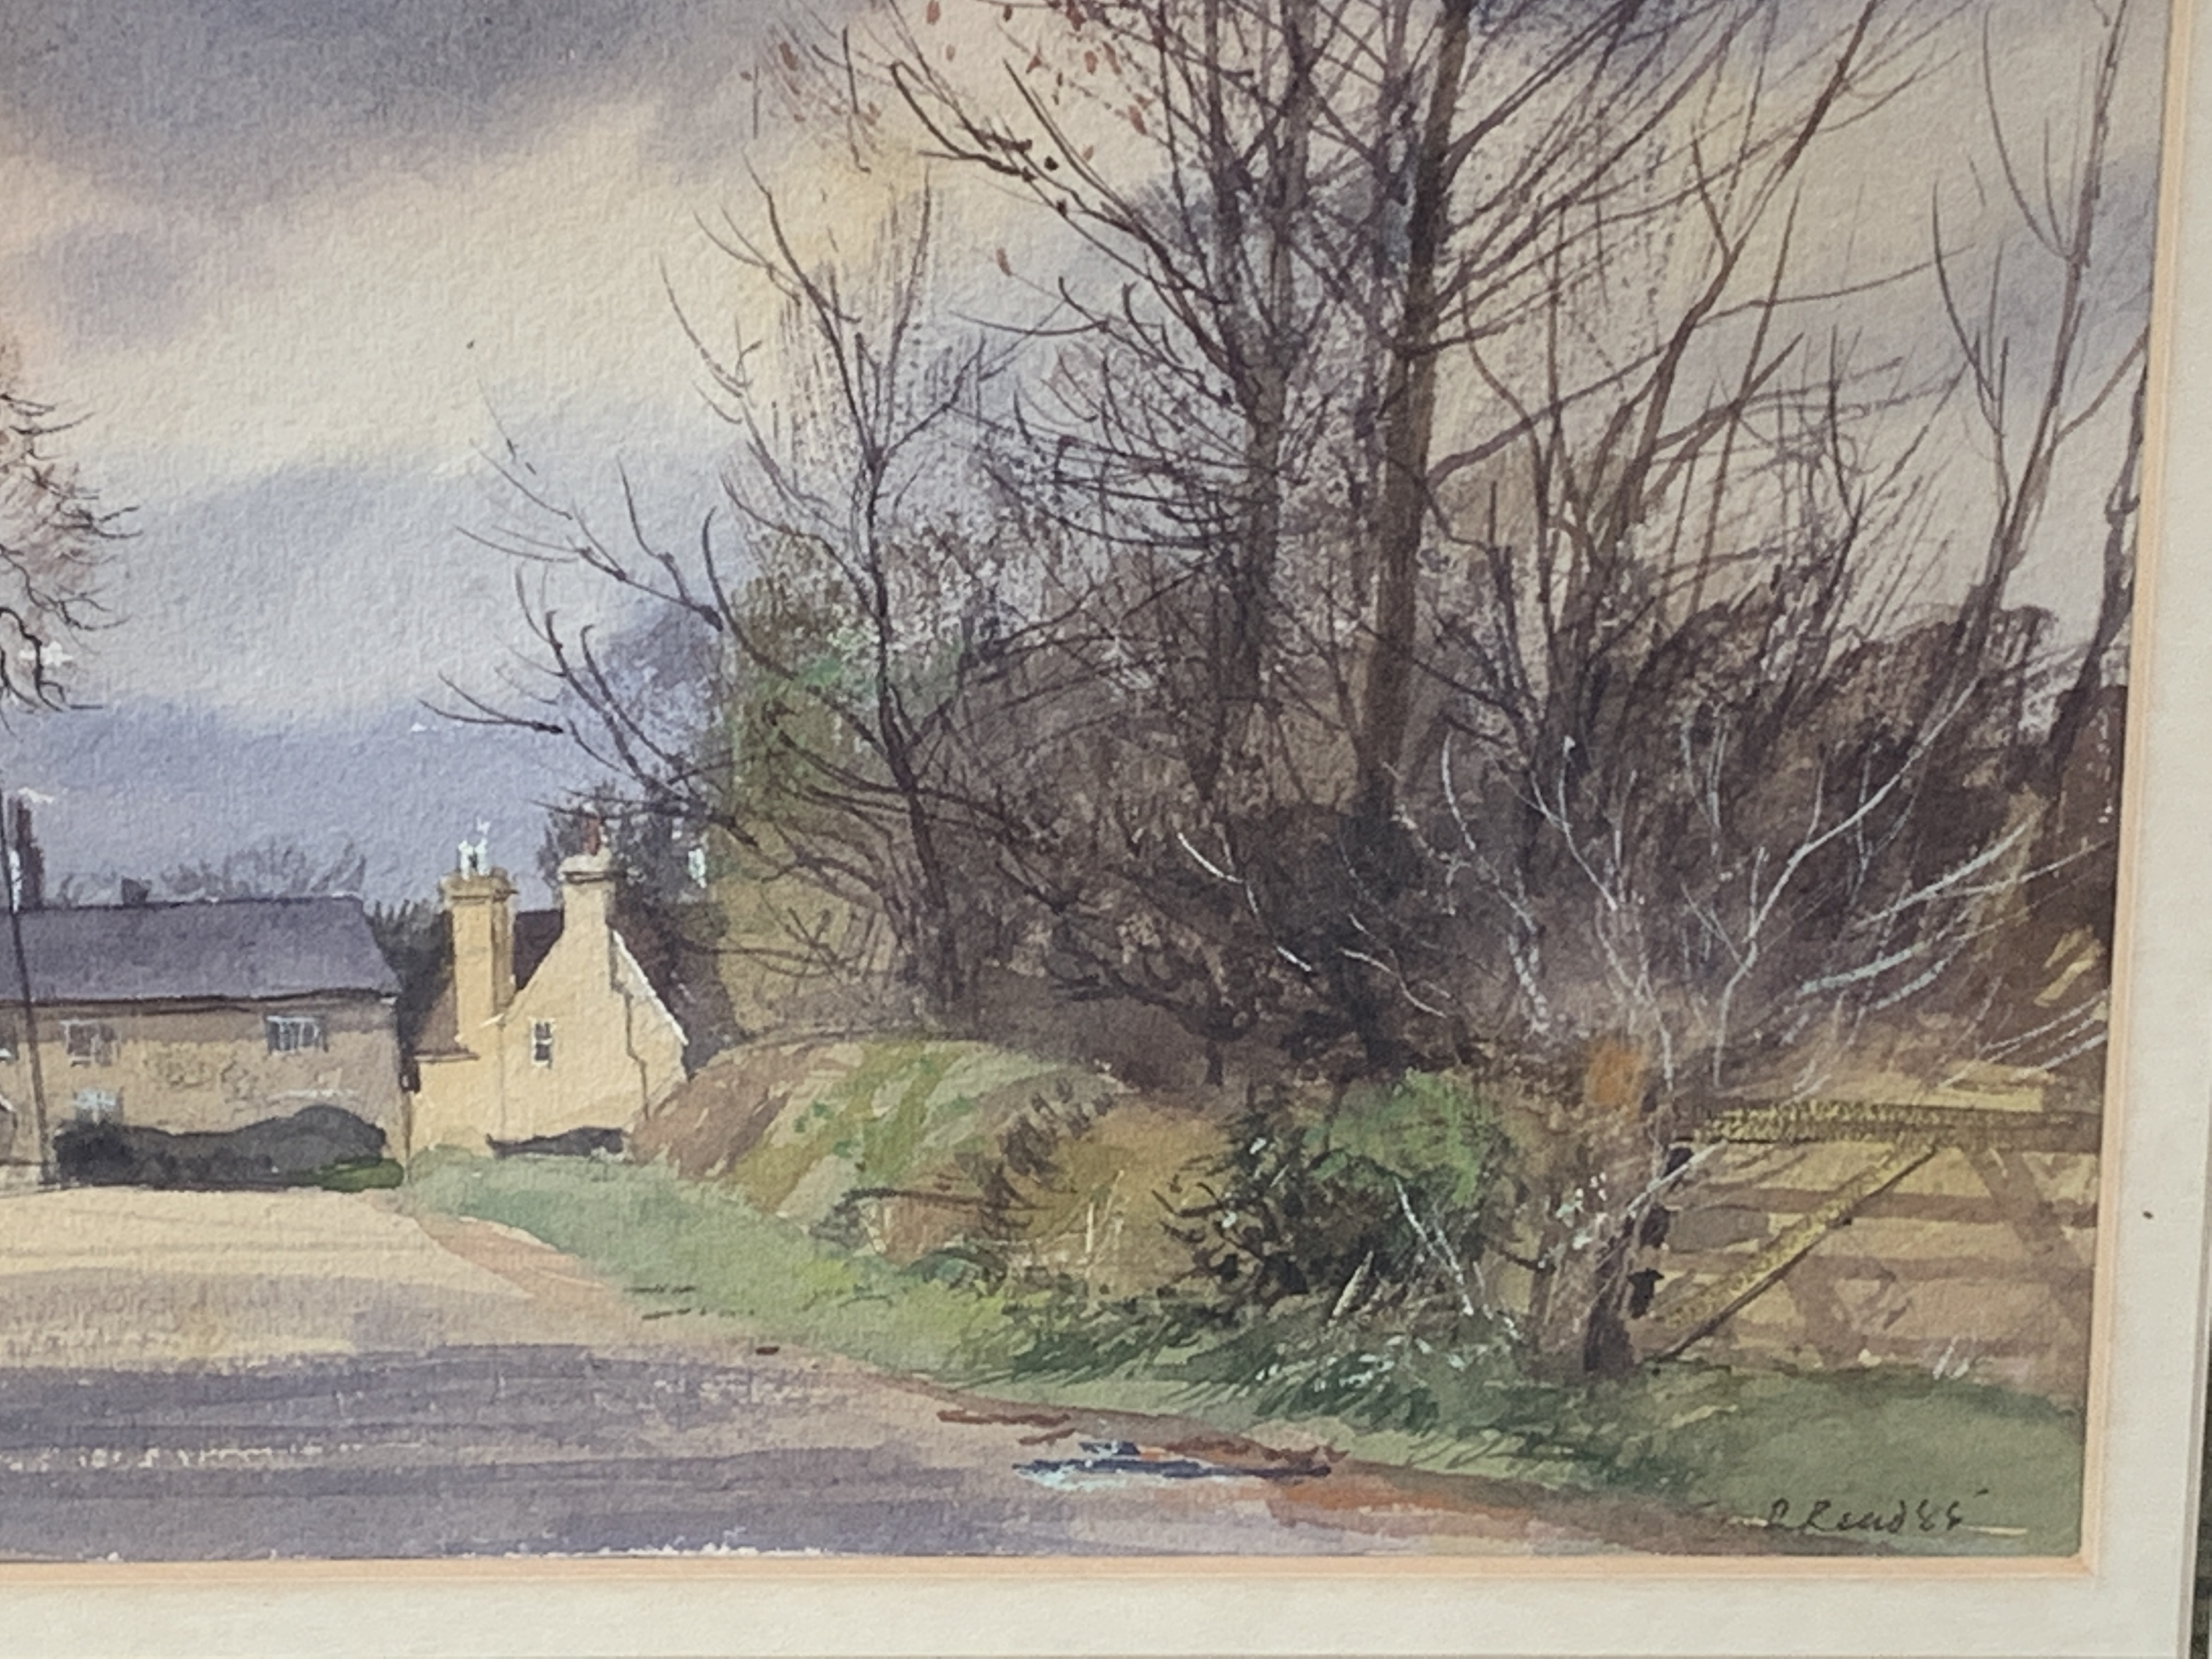 Framed and glazed watercolour, signed and dated R. Read '85